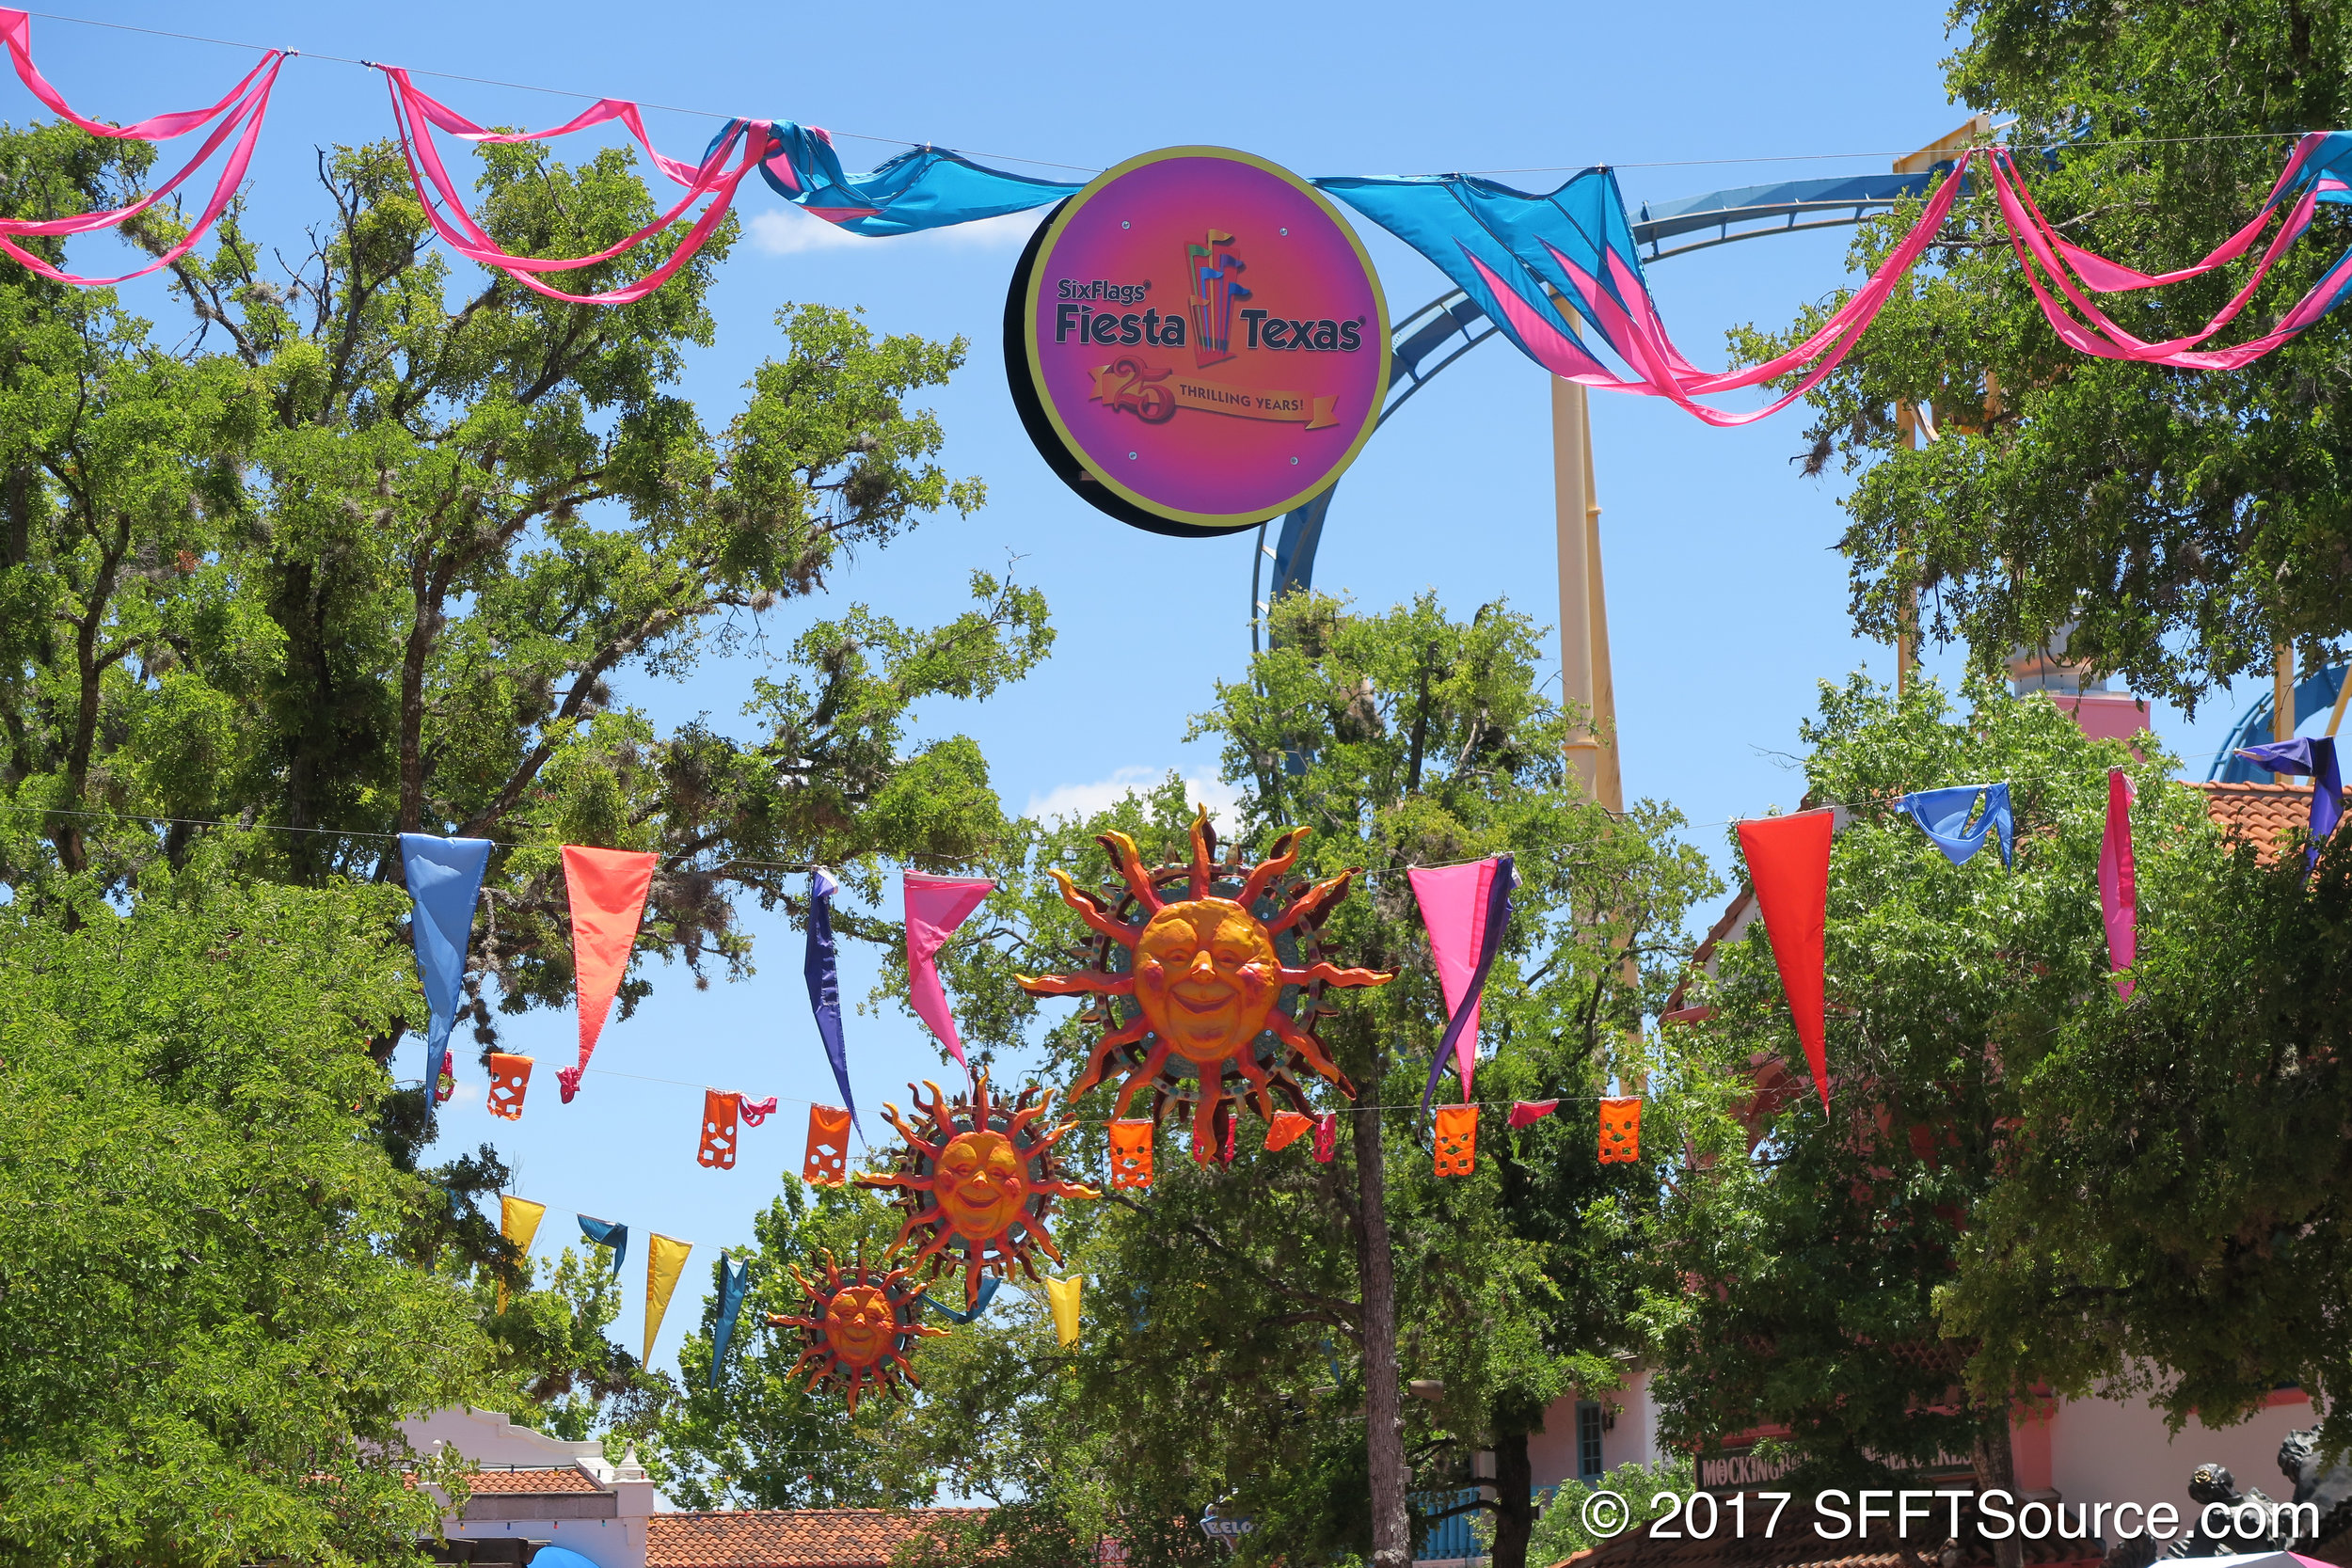 Banners hang above the pathways of Los Festivales.